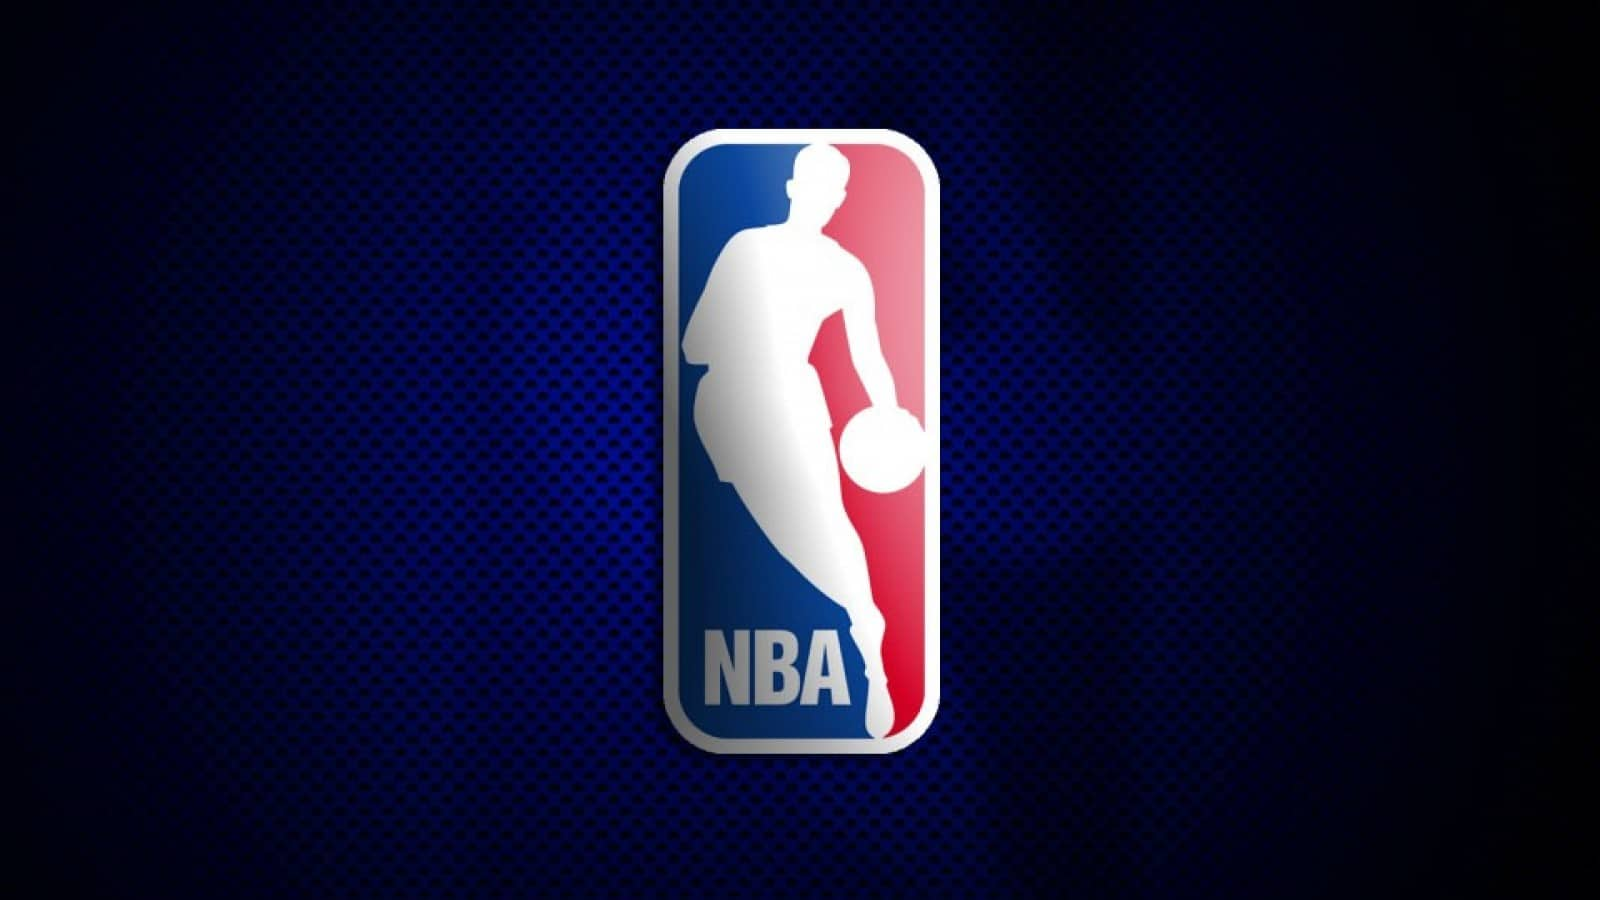 NBA Draft 2020 Scheduled for November 18th | Los Angeles